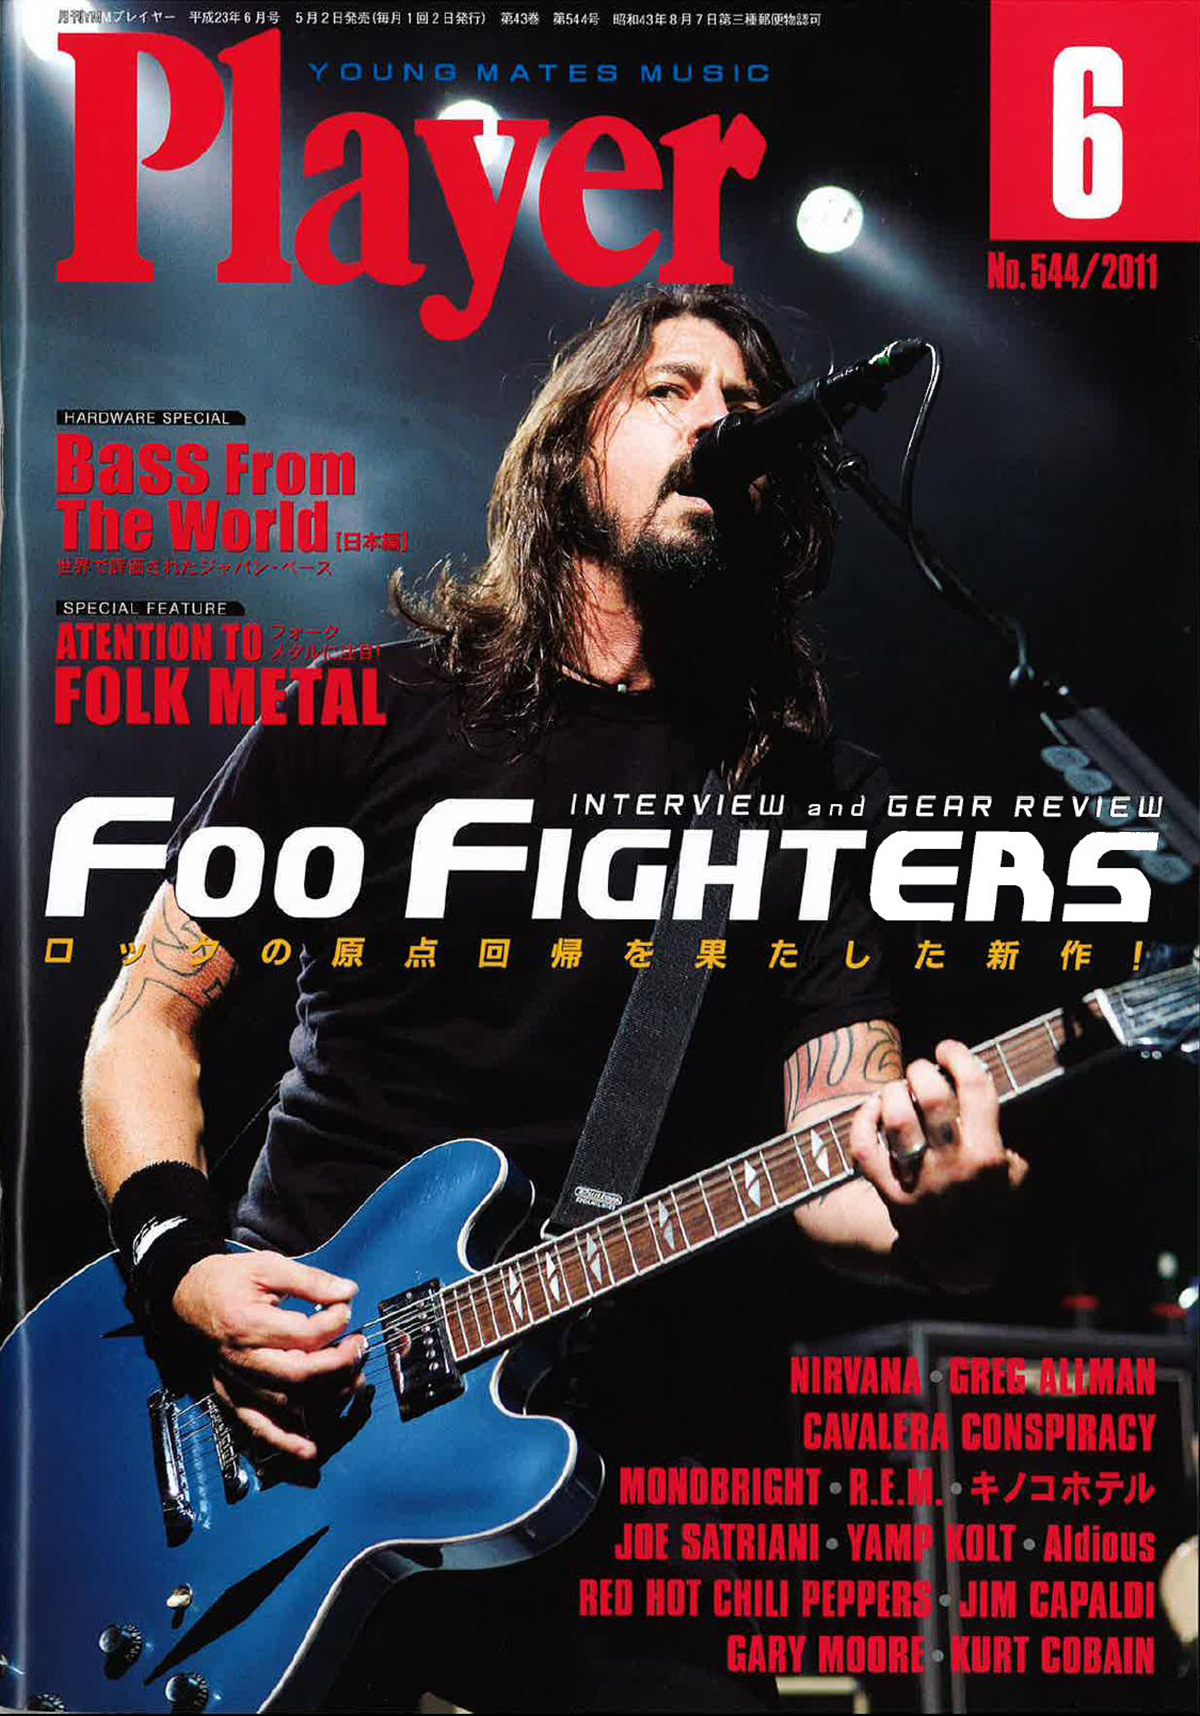 foo-fighters-player-magazine-cover.jpg